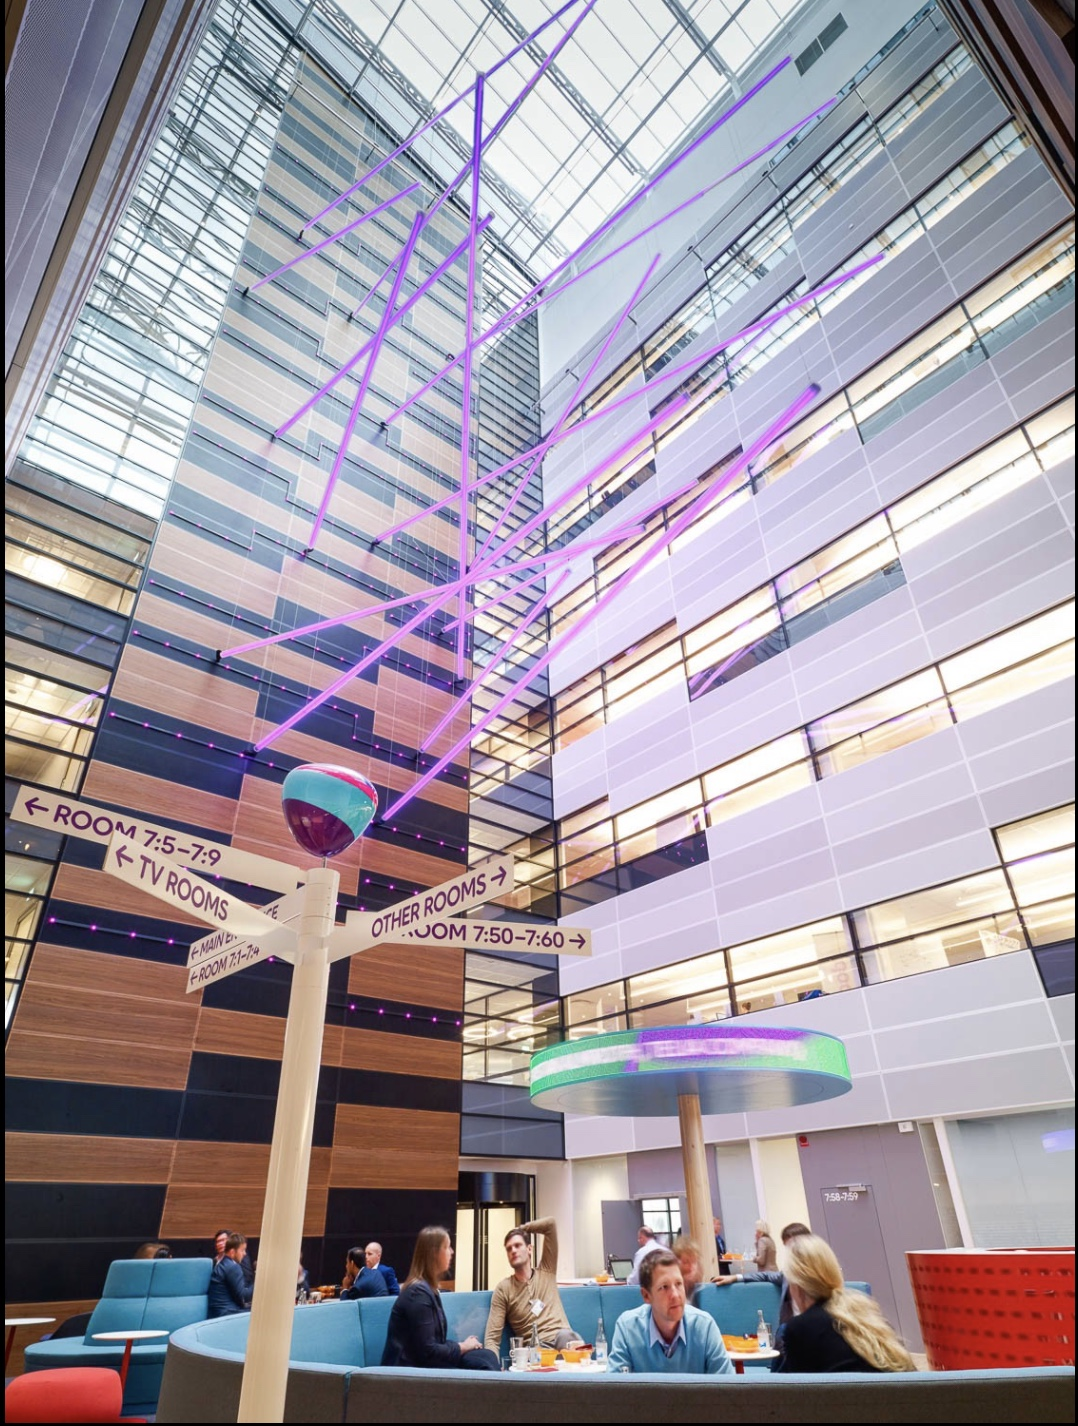 ..and a light show with moving, multi coloured lights over heads, which can be enjoyed from all floors…    Light installation by ÅF, Photo by Per Ranung